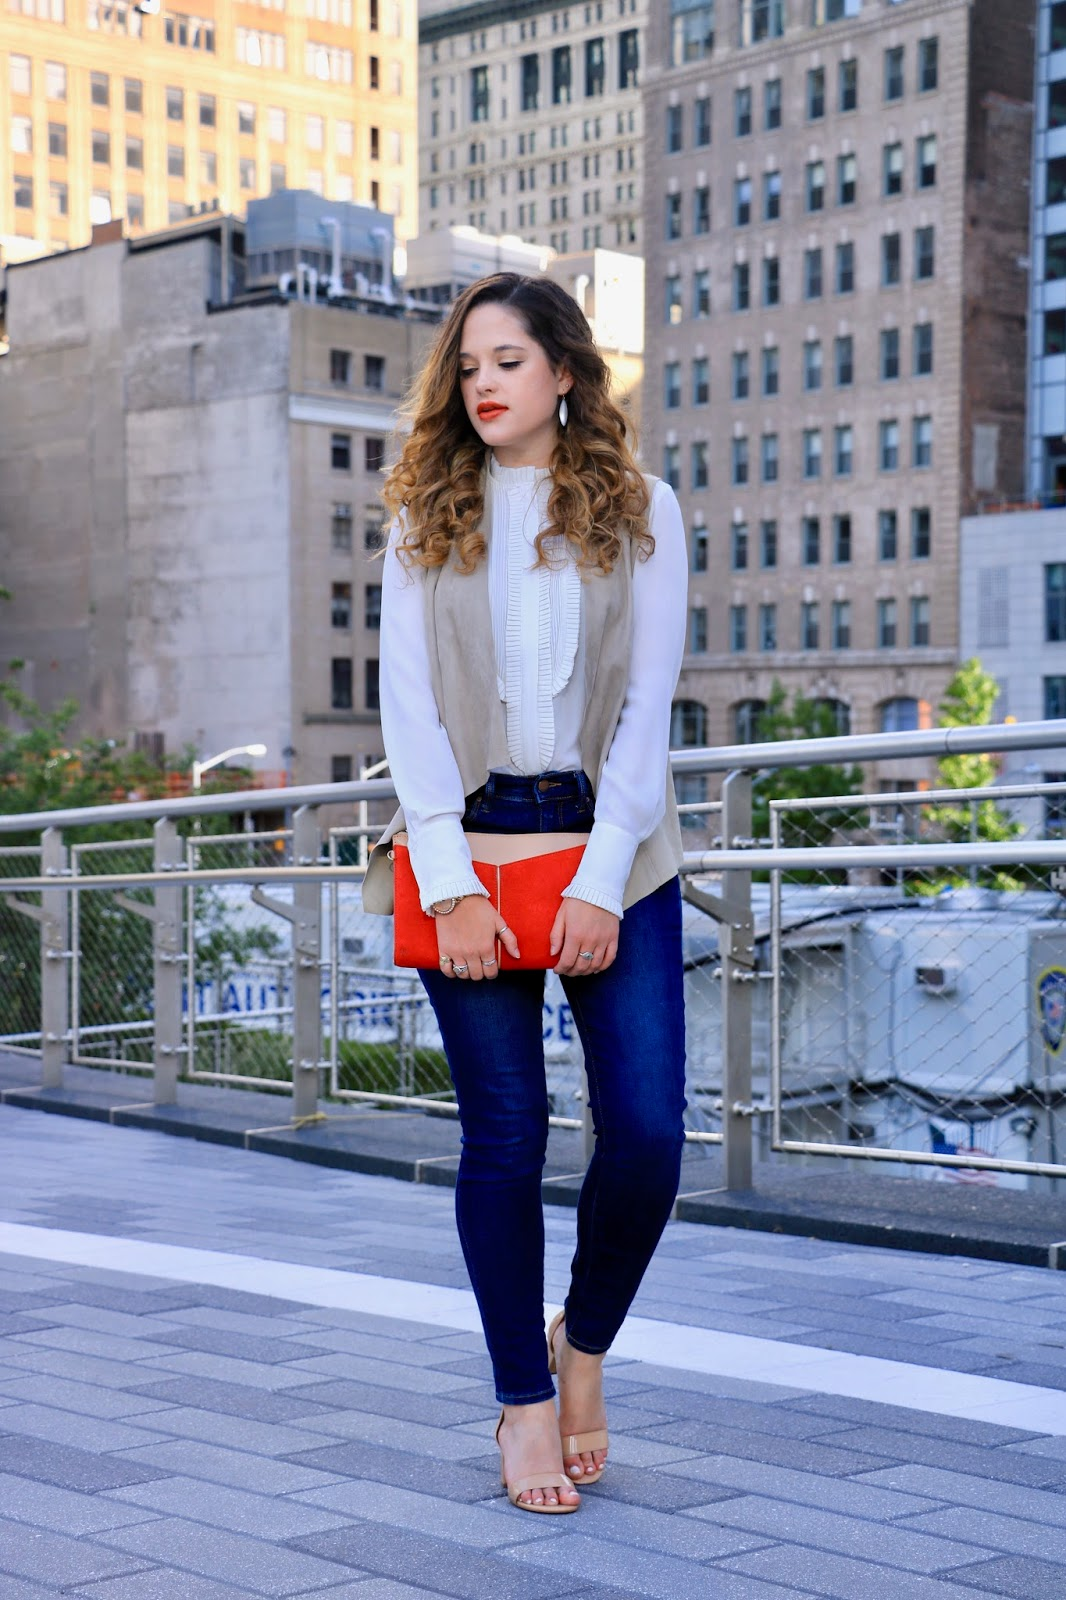 Nyc fashion blogger Kathleen Harper showing fall outfit ideas